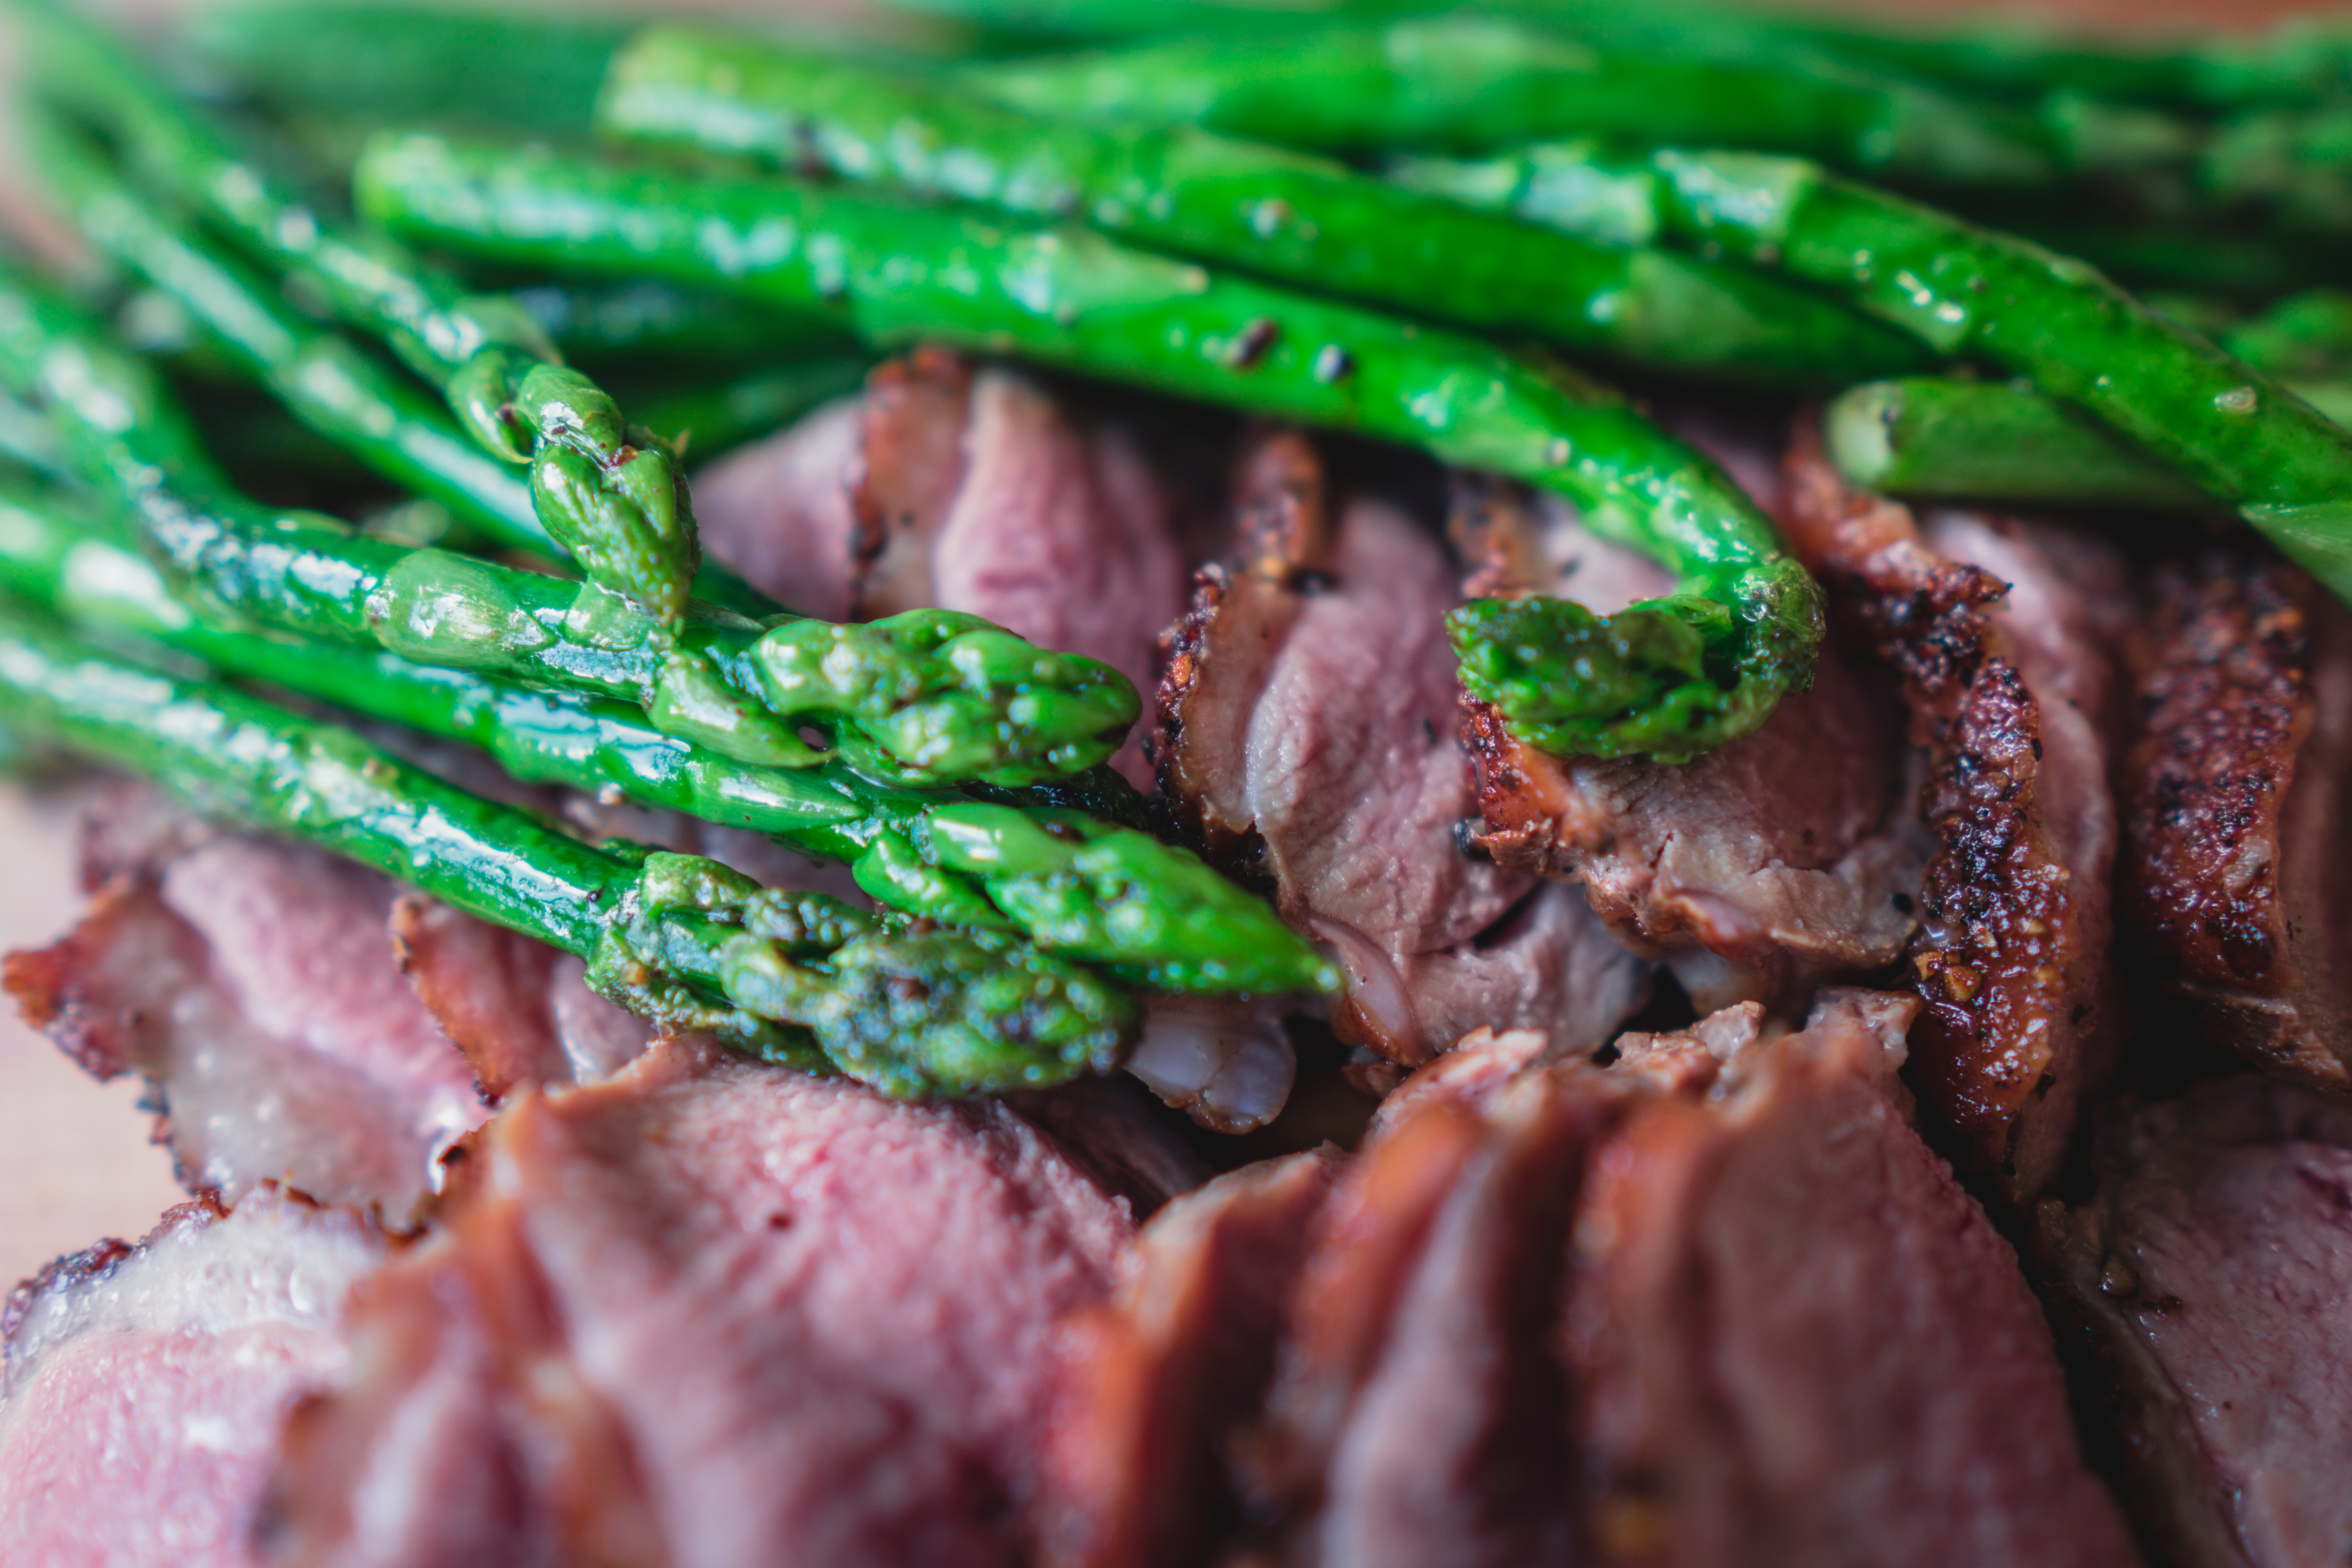 Green asparagus and meat.